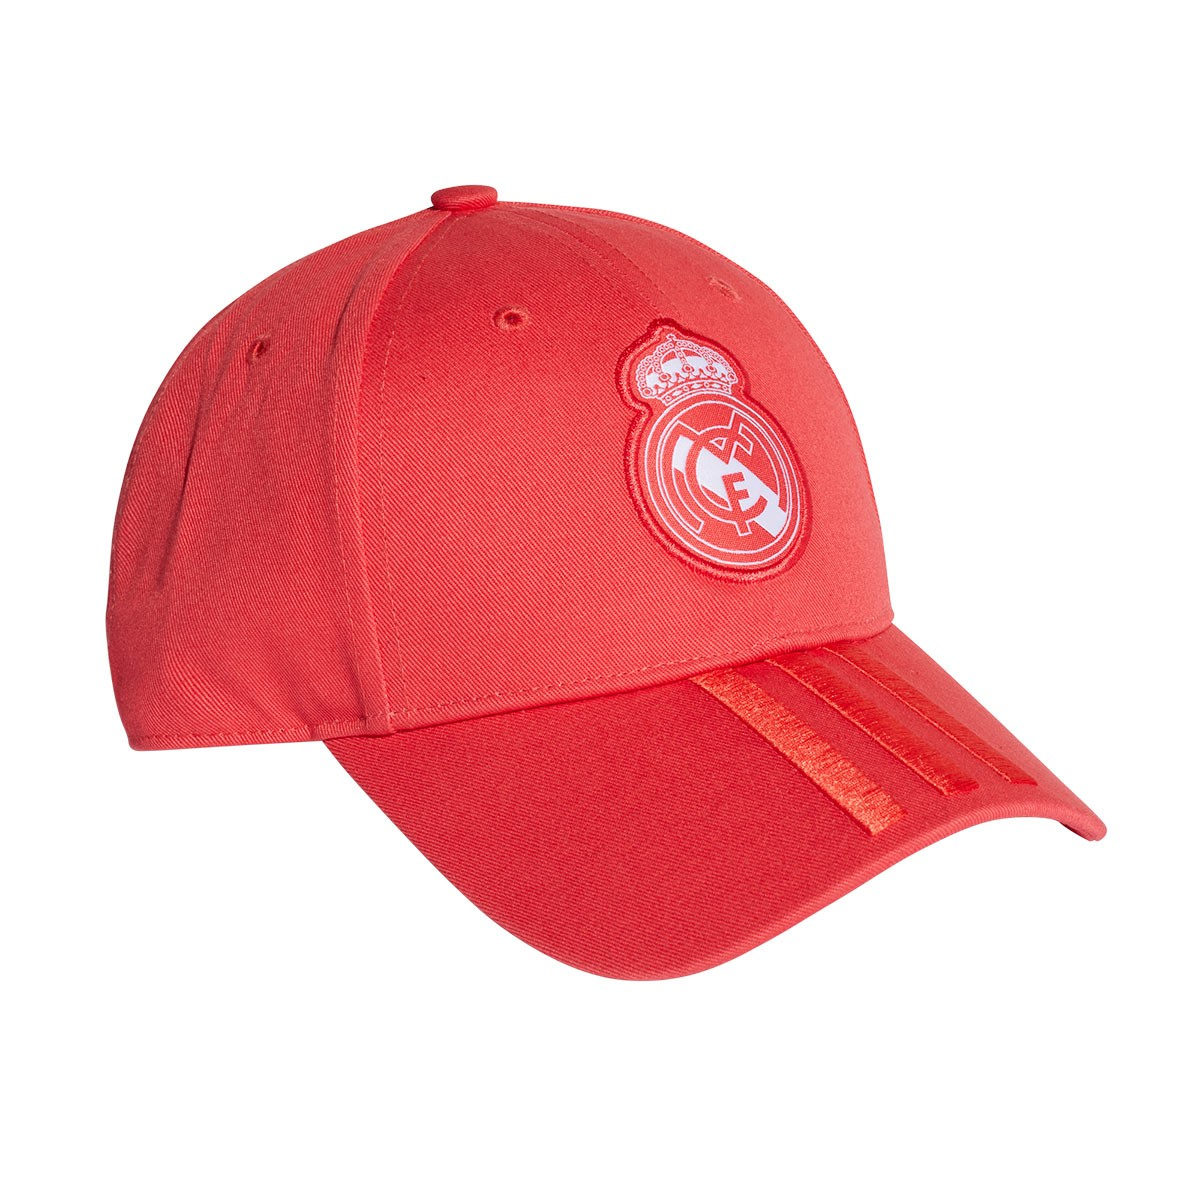 bb9b114e208 Cap adidas Real Madrid 3S 2018-2019 Real coral-Vivid red-White - Tienda de  fútbol Fútbol Emotion